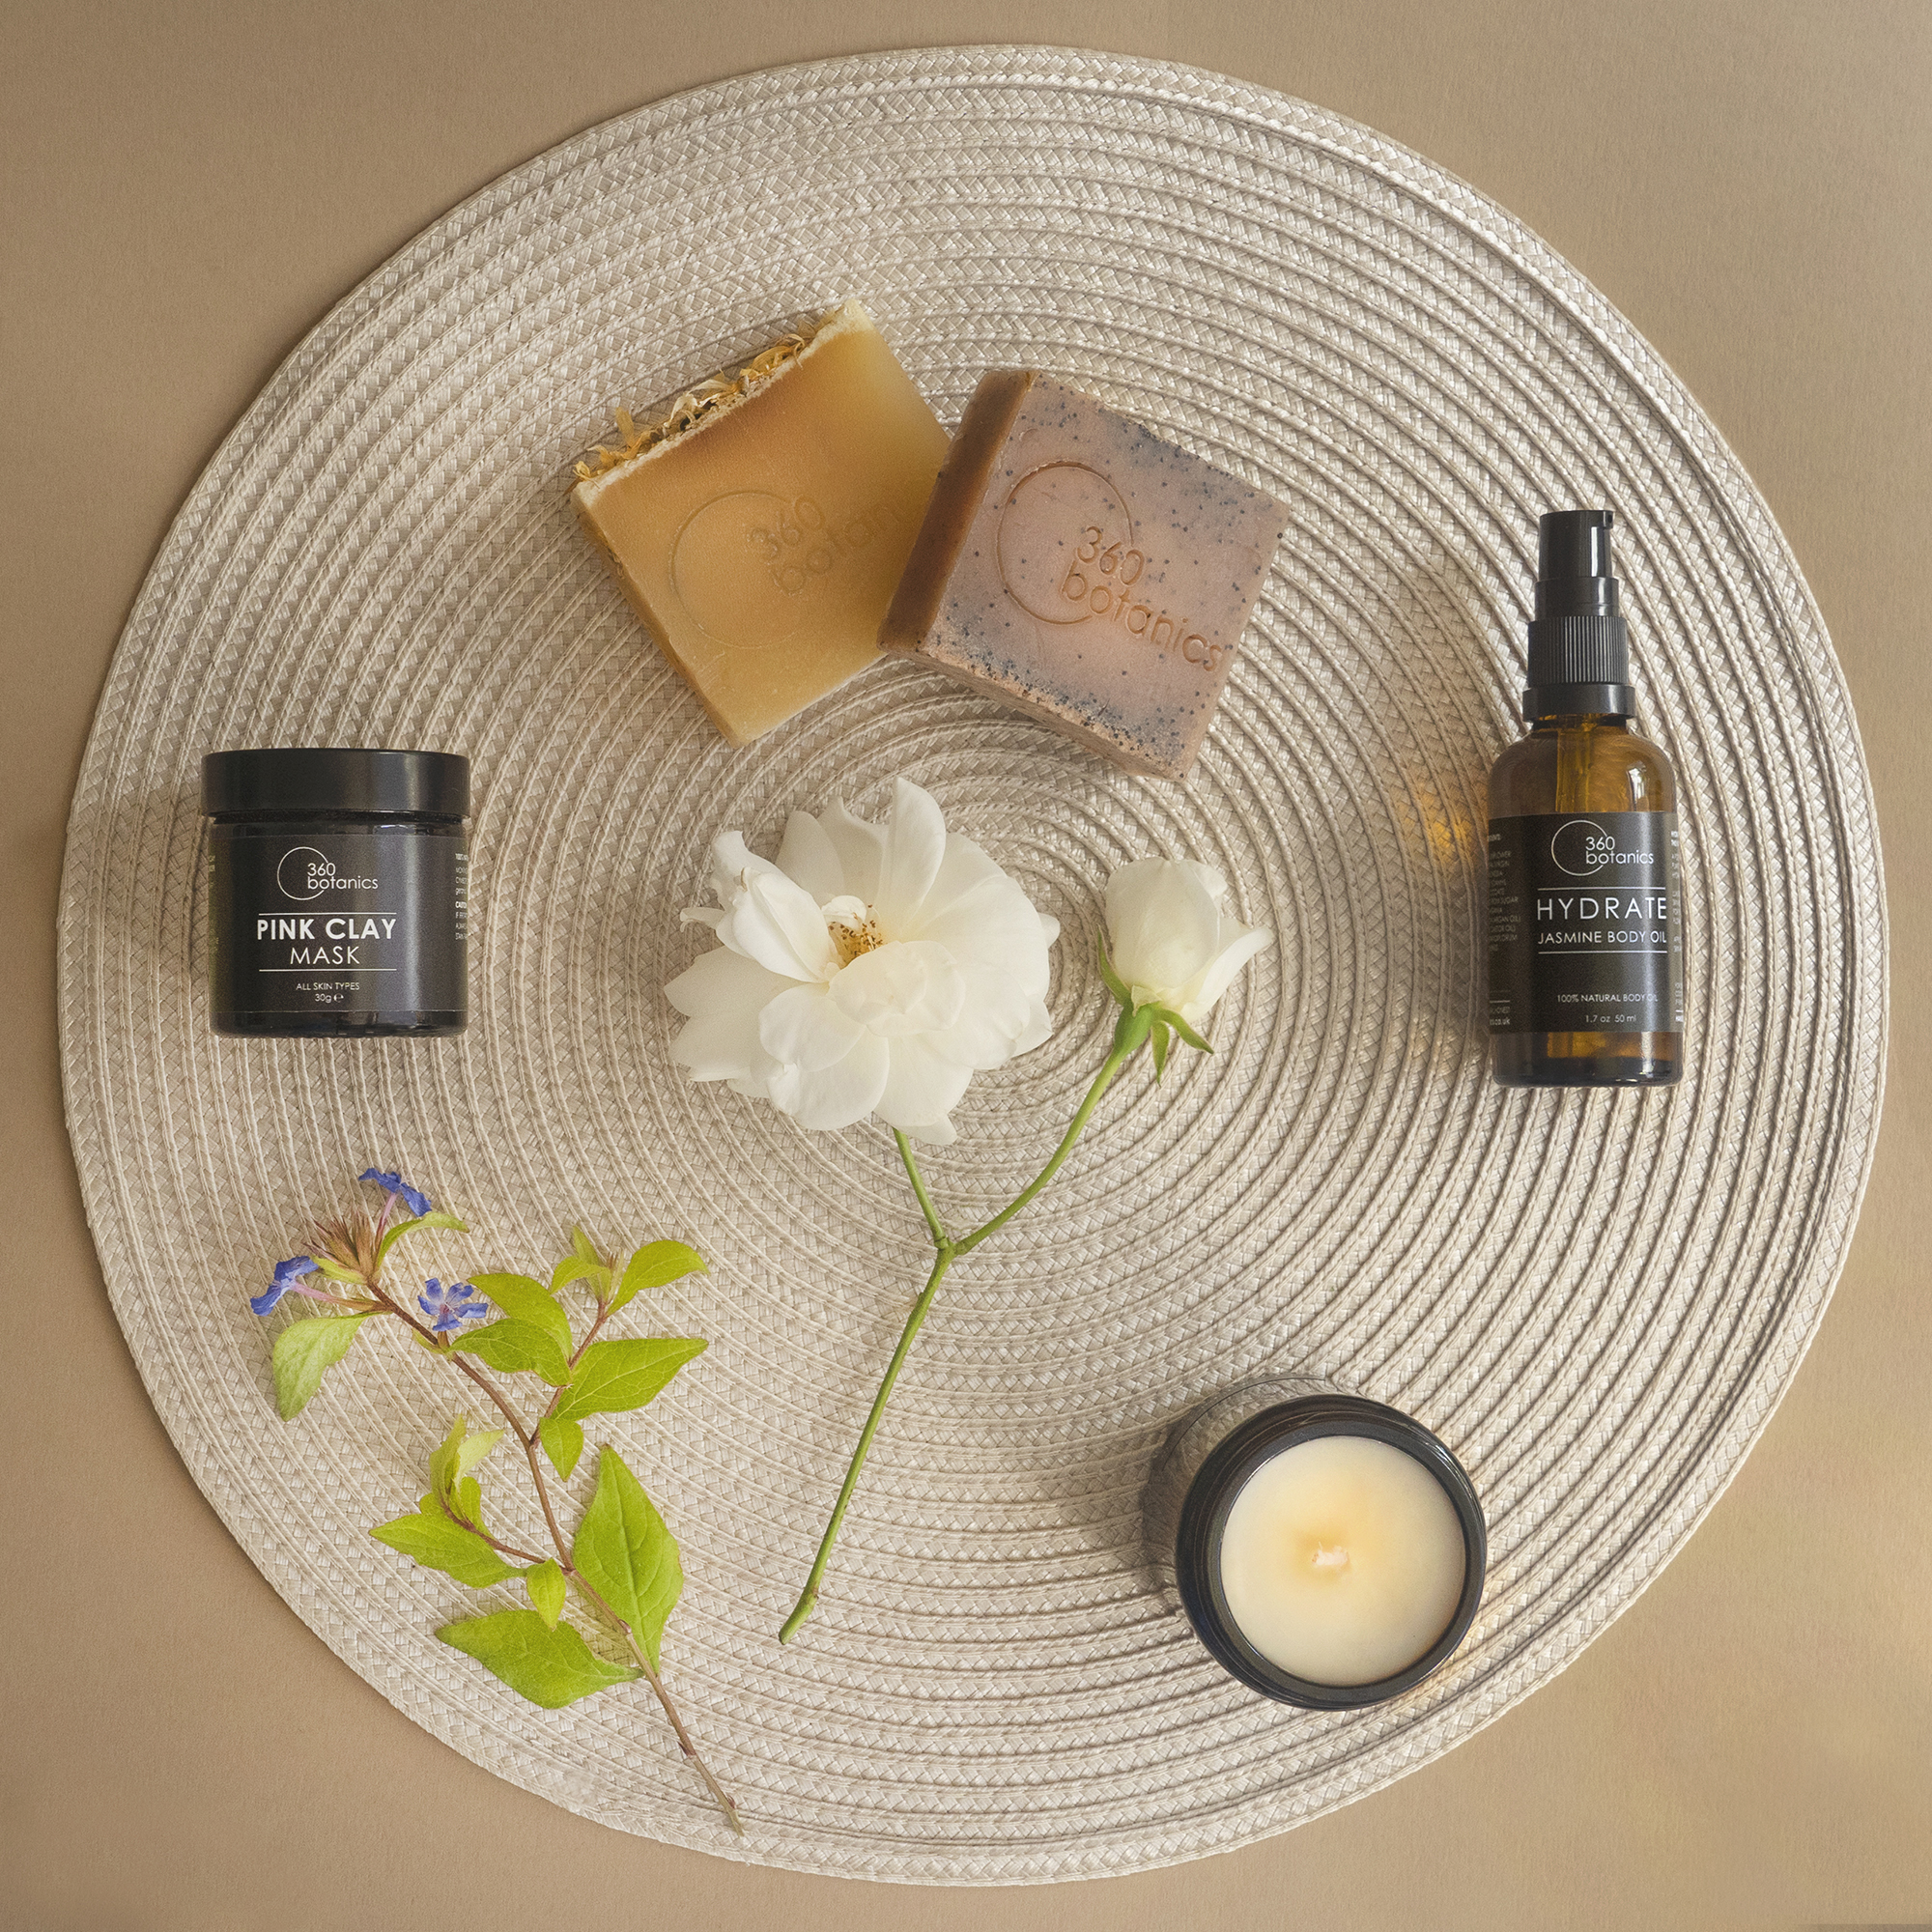 Photography Studio Flatlay Photograph for Vegan Skincare Brand 360 Botanics